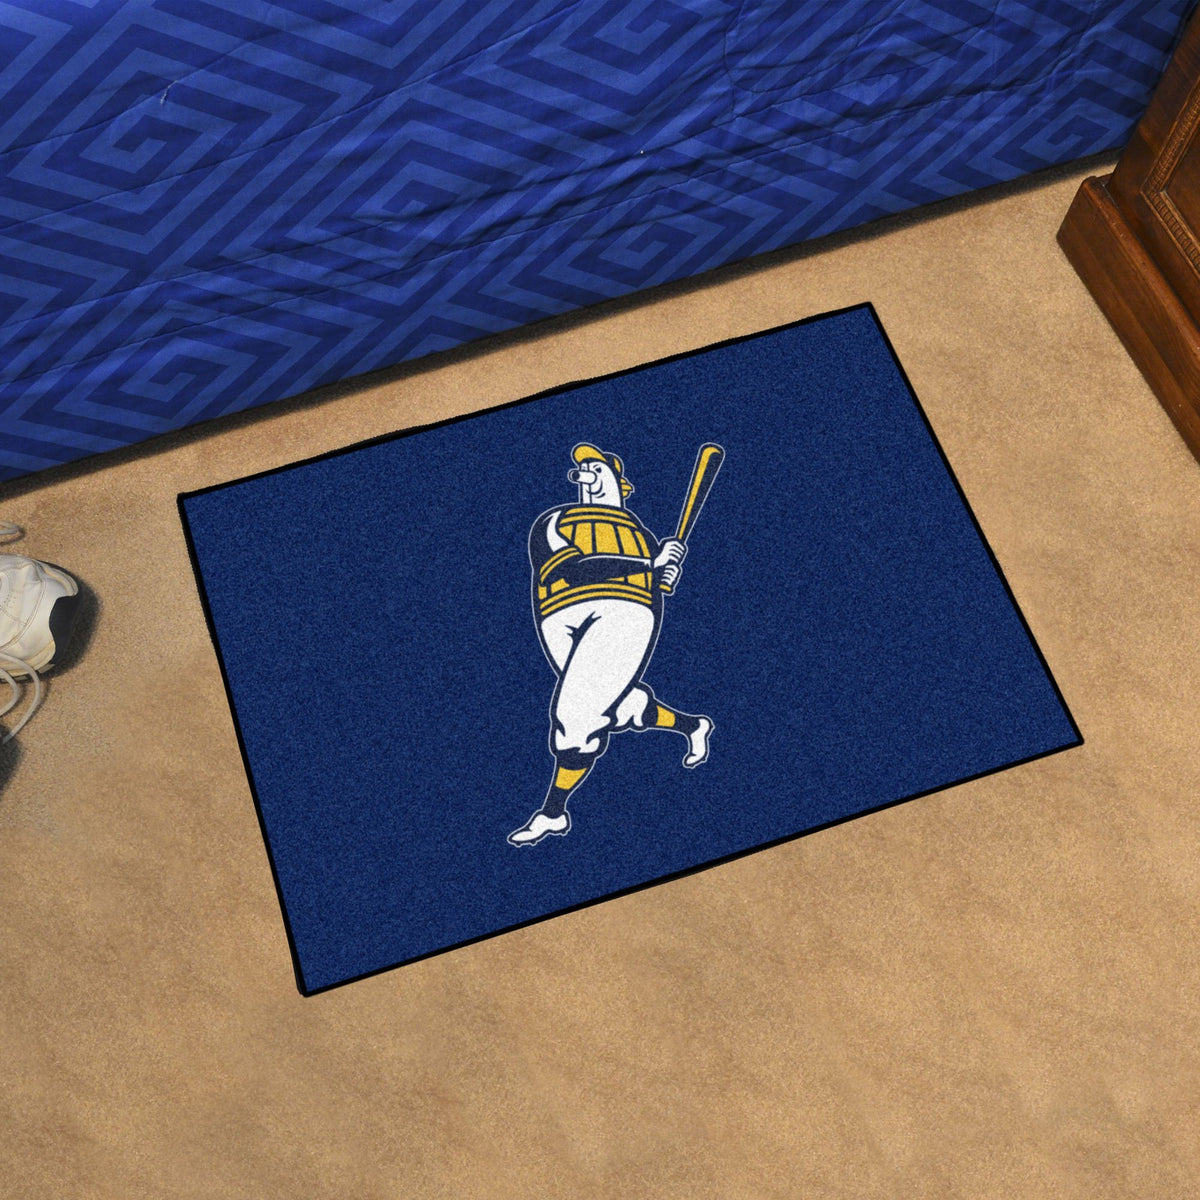 MLB - Starter Mat MLB Mats, Rectangular Mats, Starter Mat, MLB, Home Fan Mats Milwaukee Brewers 4